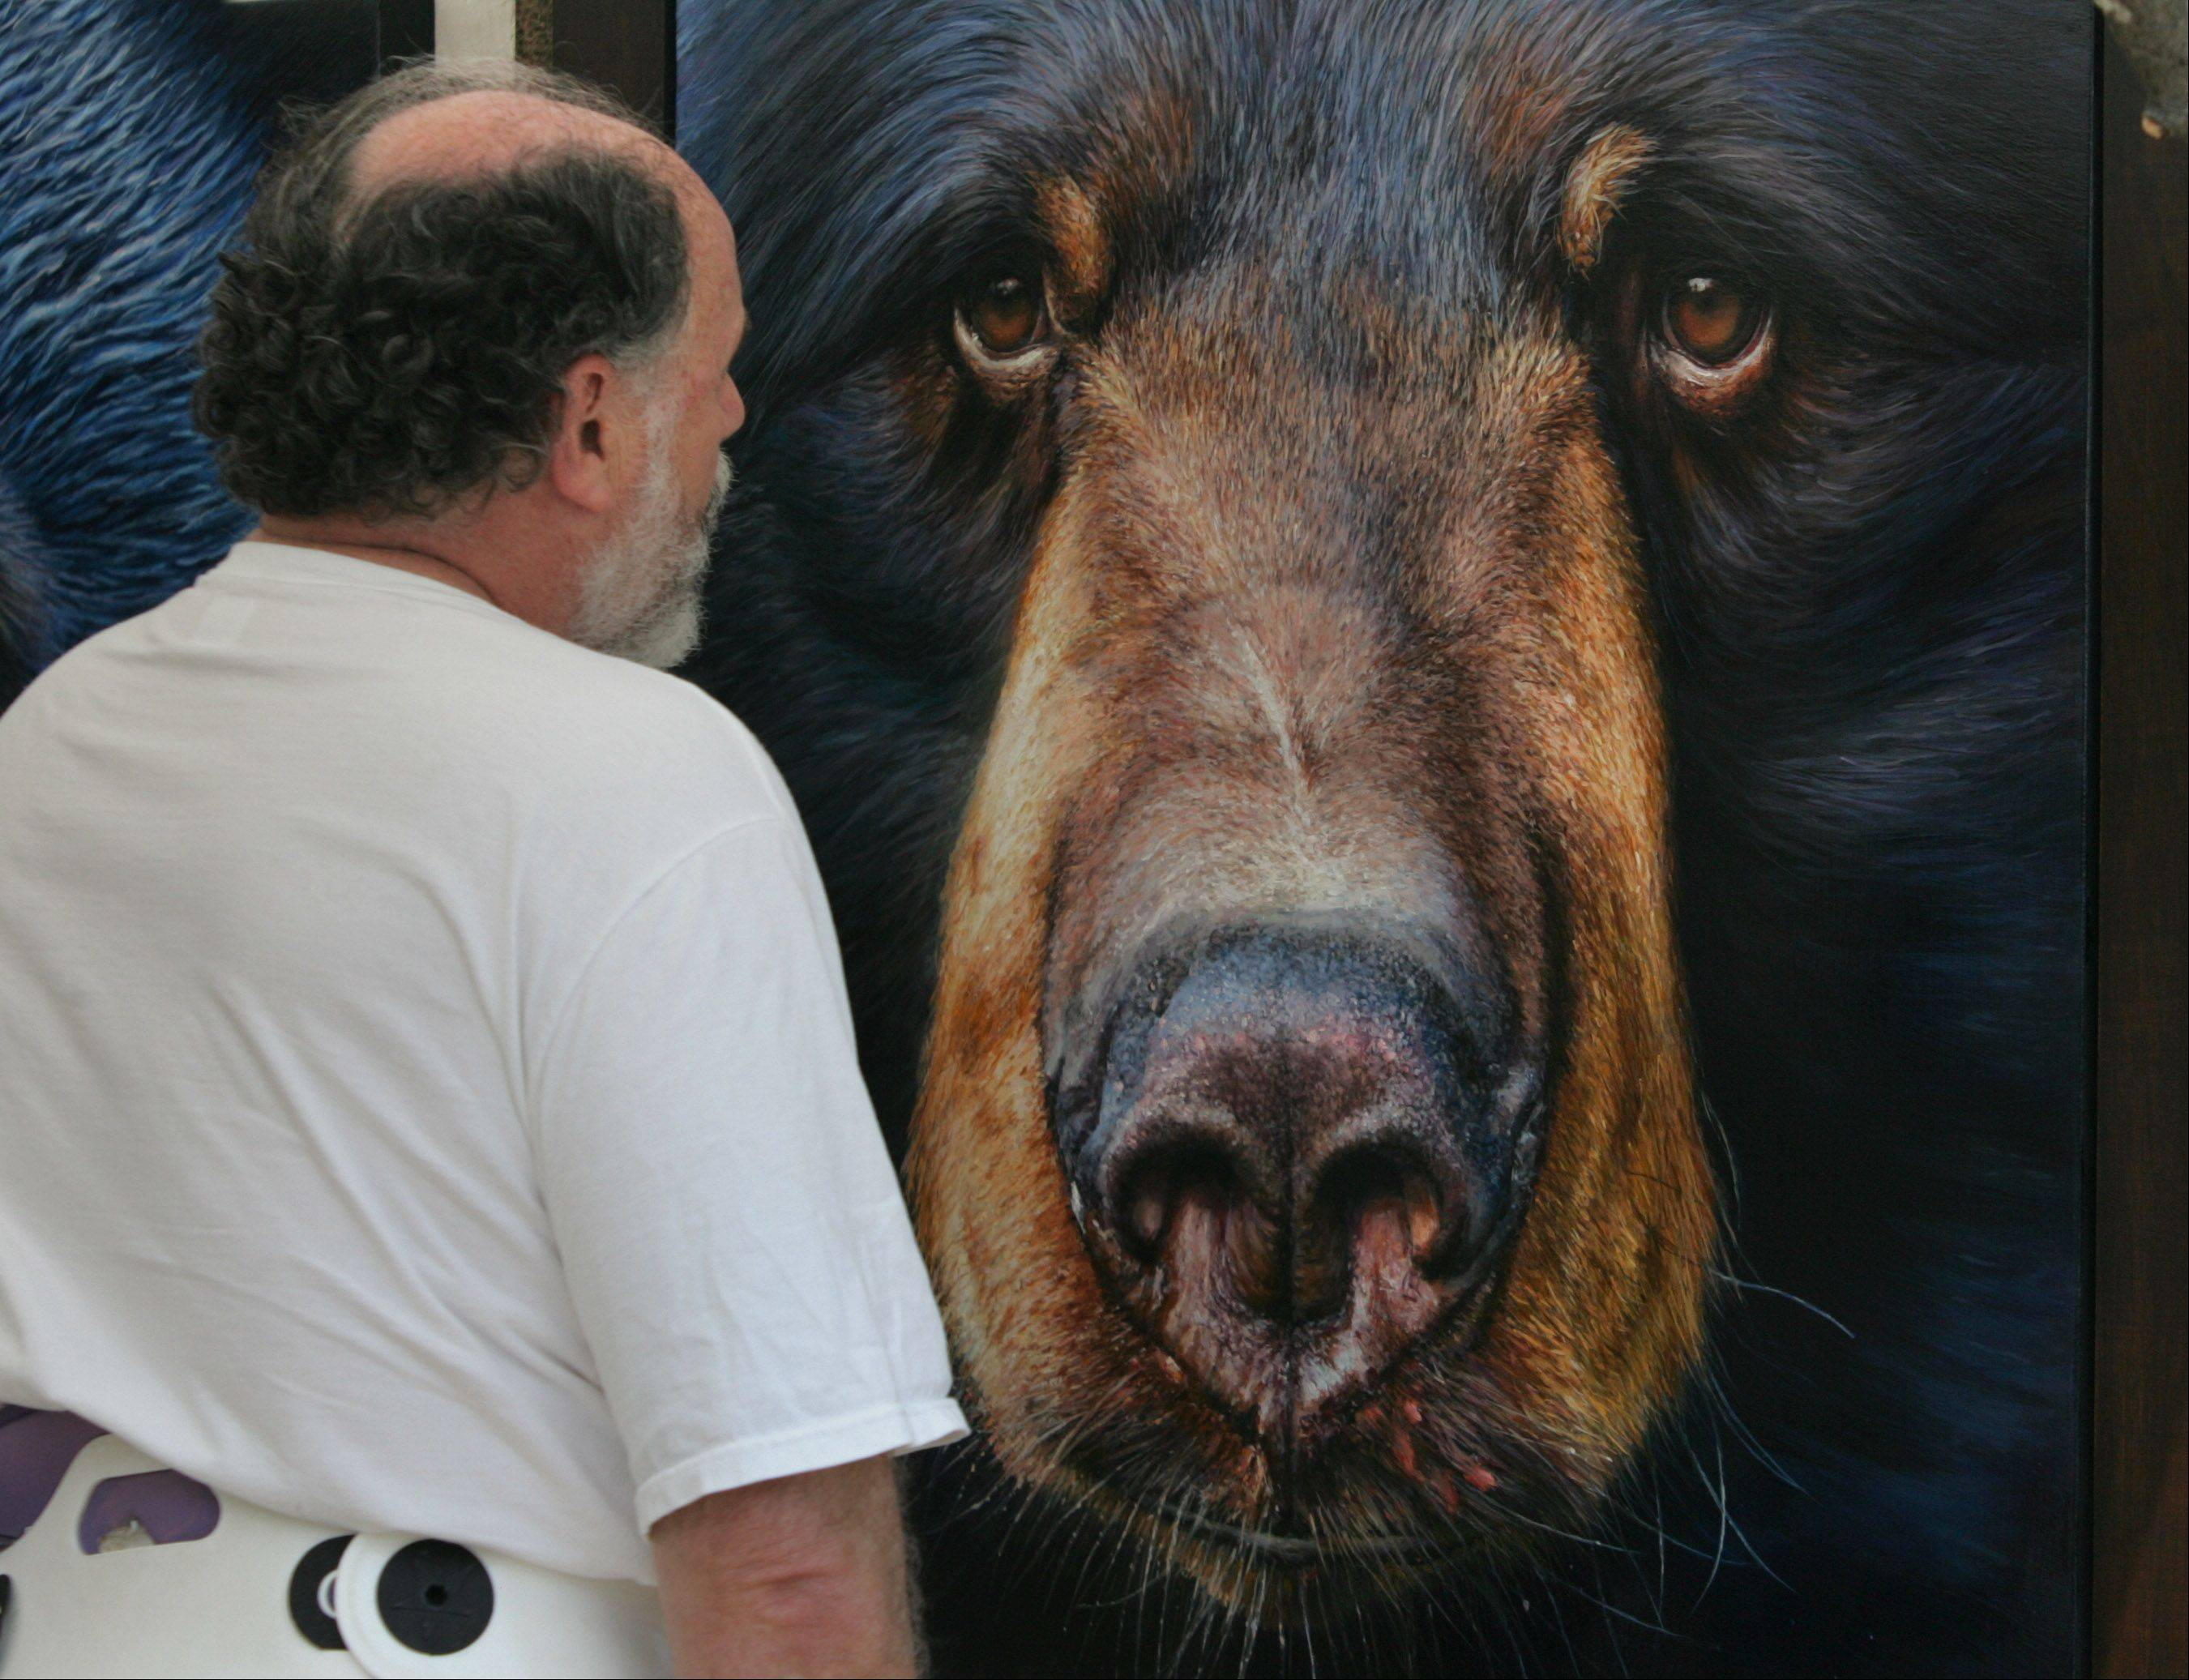 John Boots, of Woodstock, looks at the oil painting of a bear by Michael Bedoian during the Barrington Arts Festival Saturday along Station Street in downtown Barrington. The event featured more than 140 juried artists from around the world in a variety of medium.